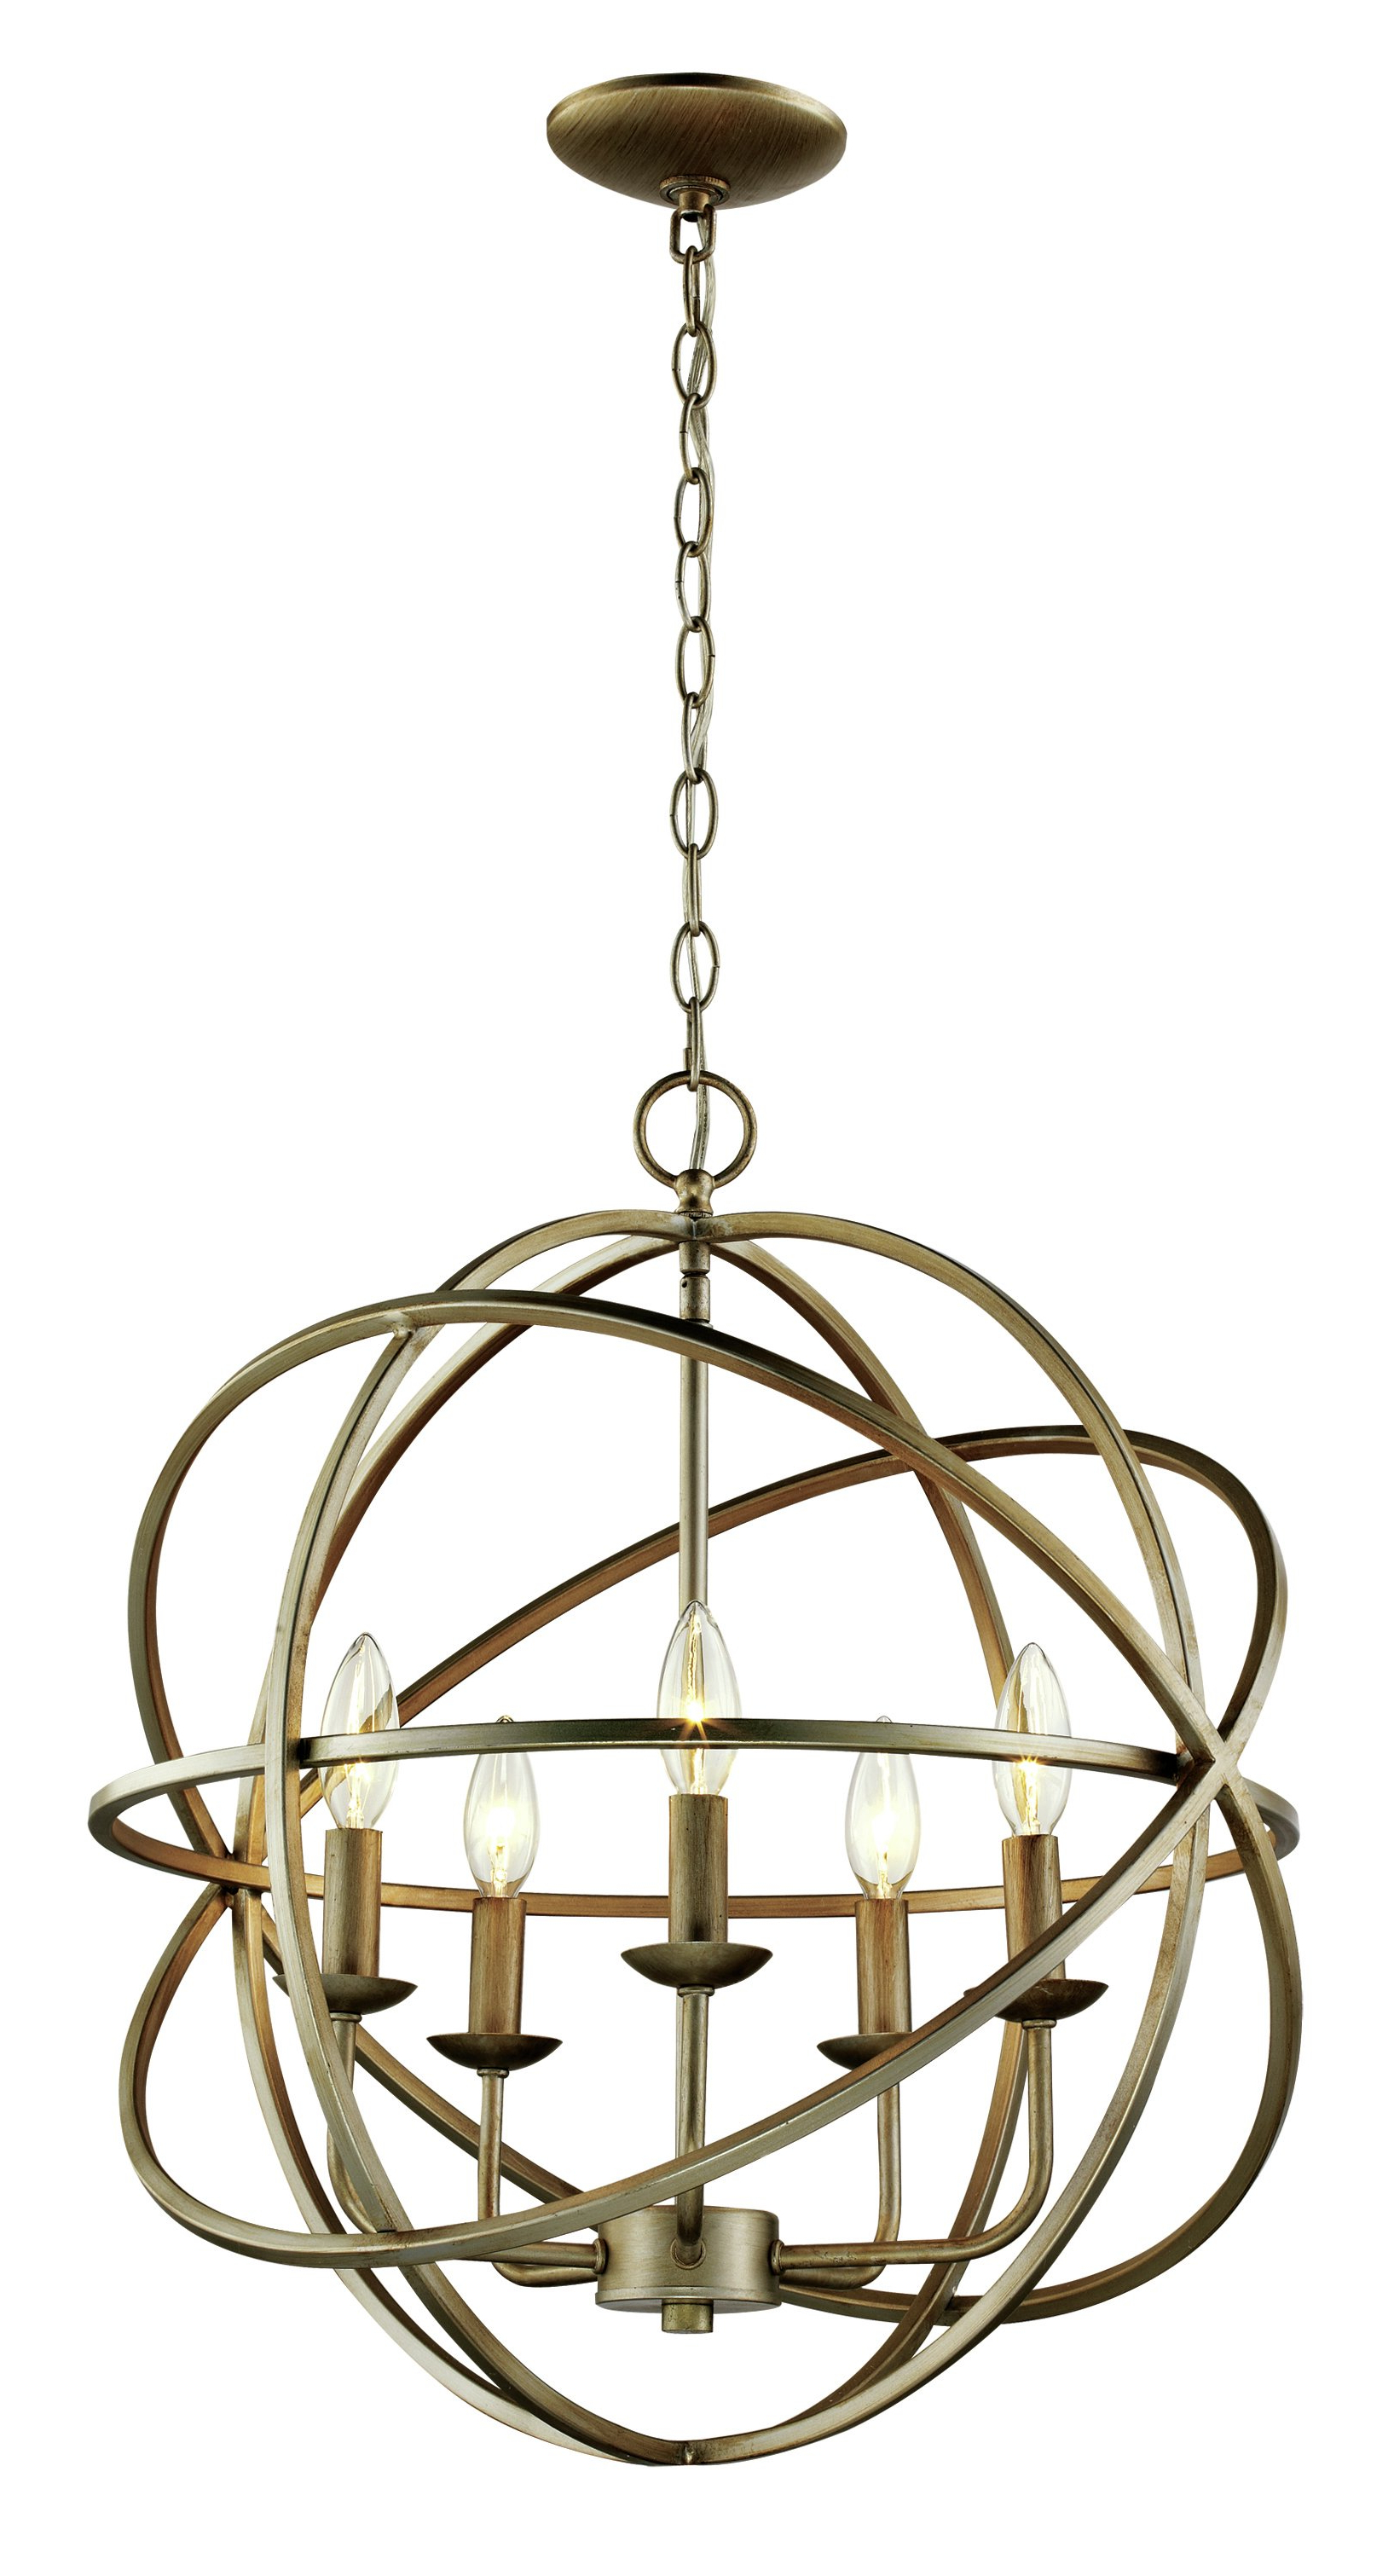 Newest Farmhouse & Rustic Geometric Chandeliers (View 15 of 25)